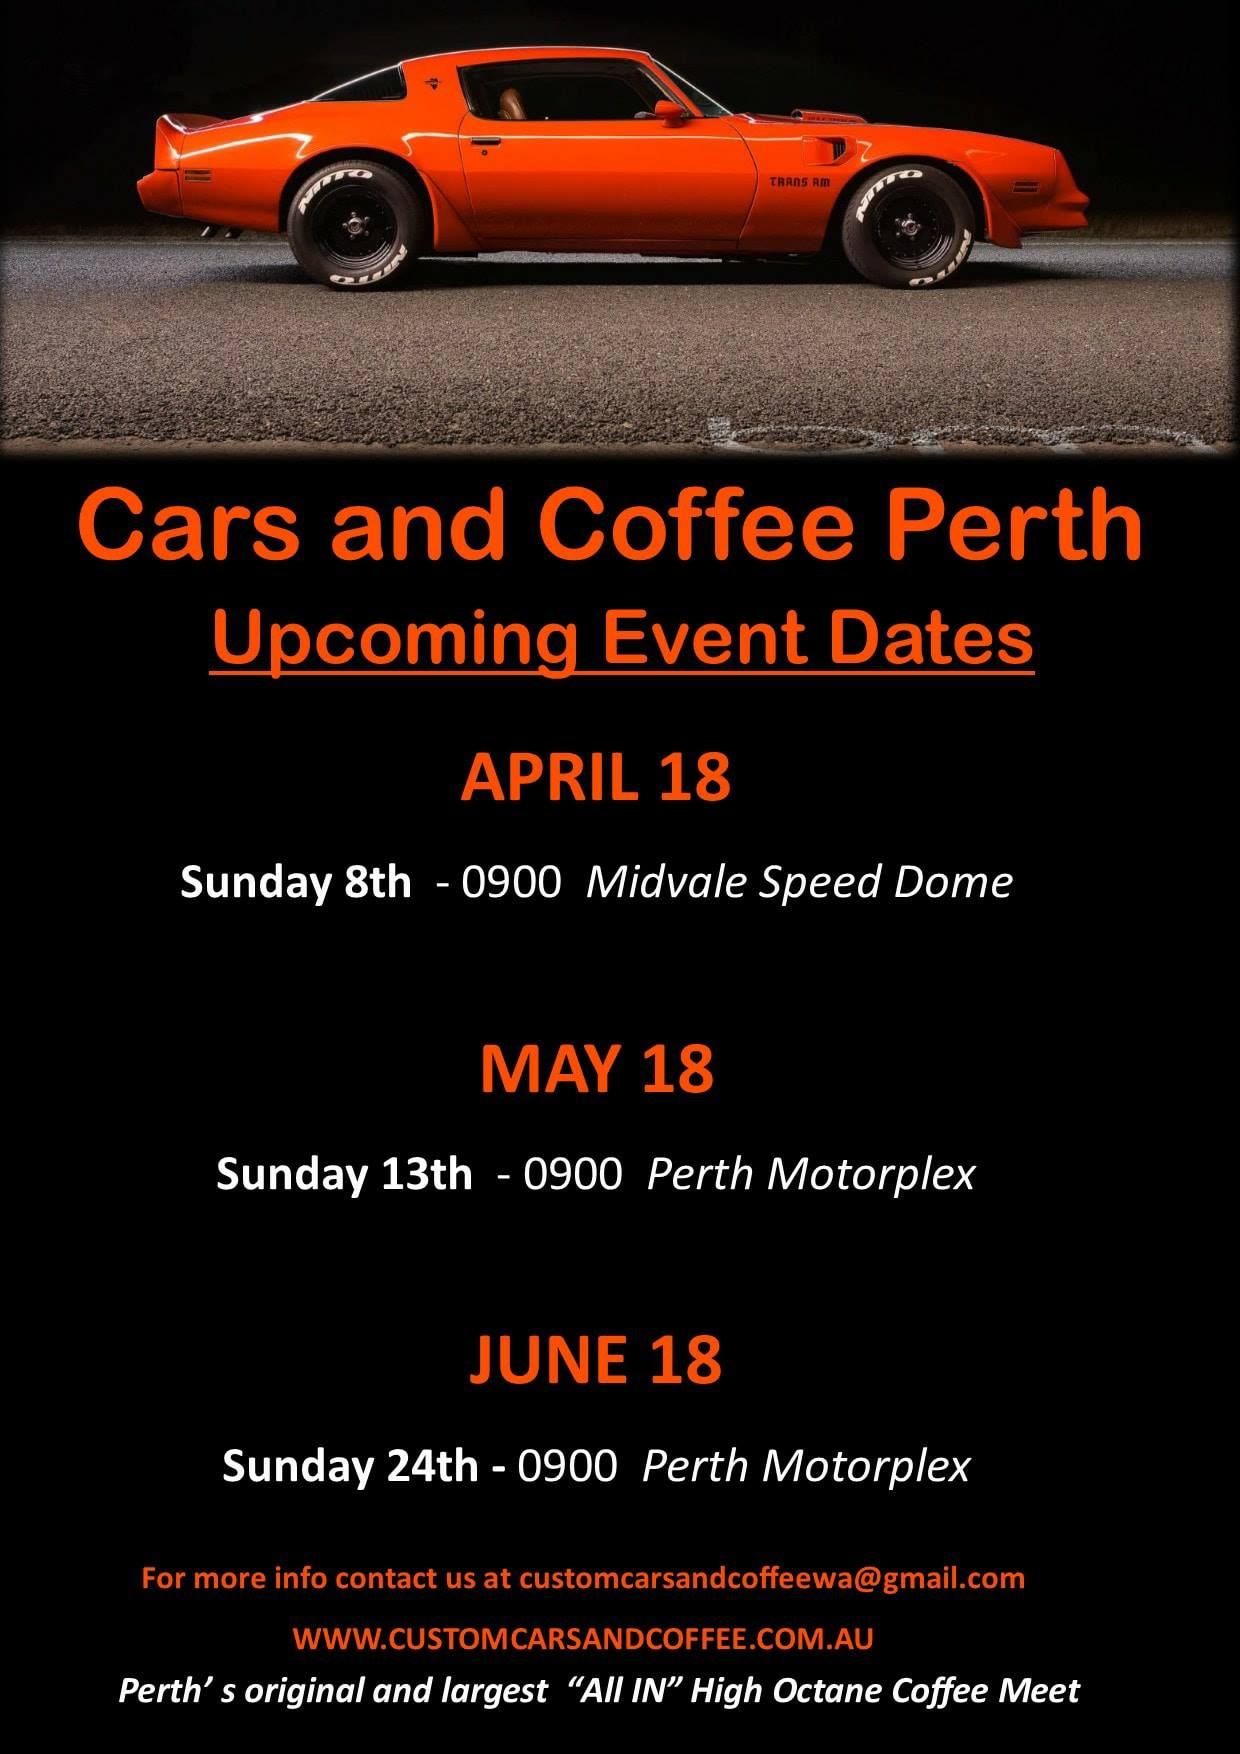 cars and coffee perth